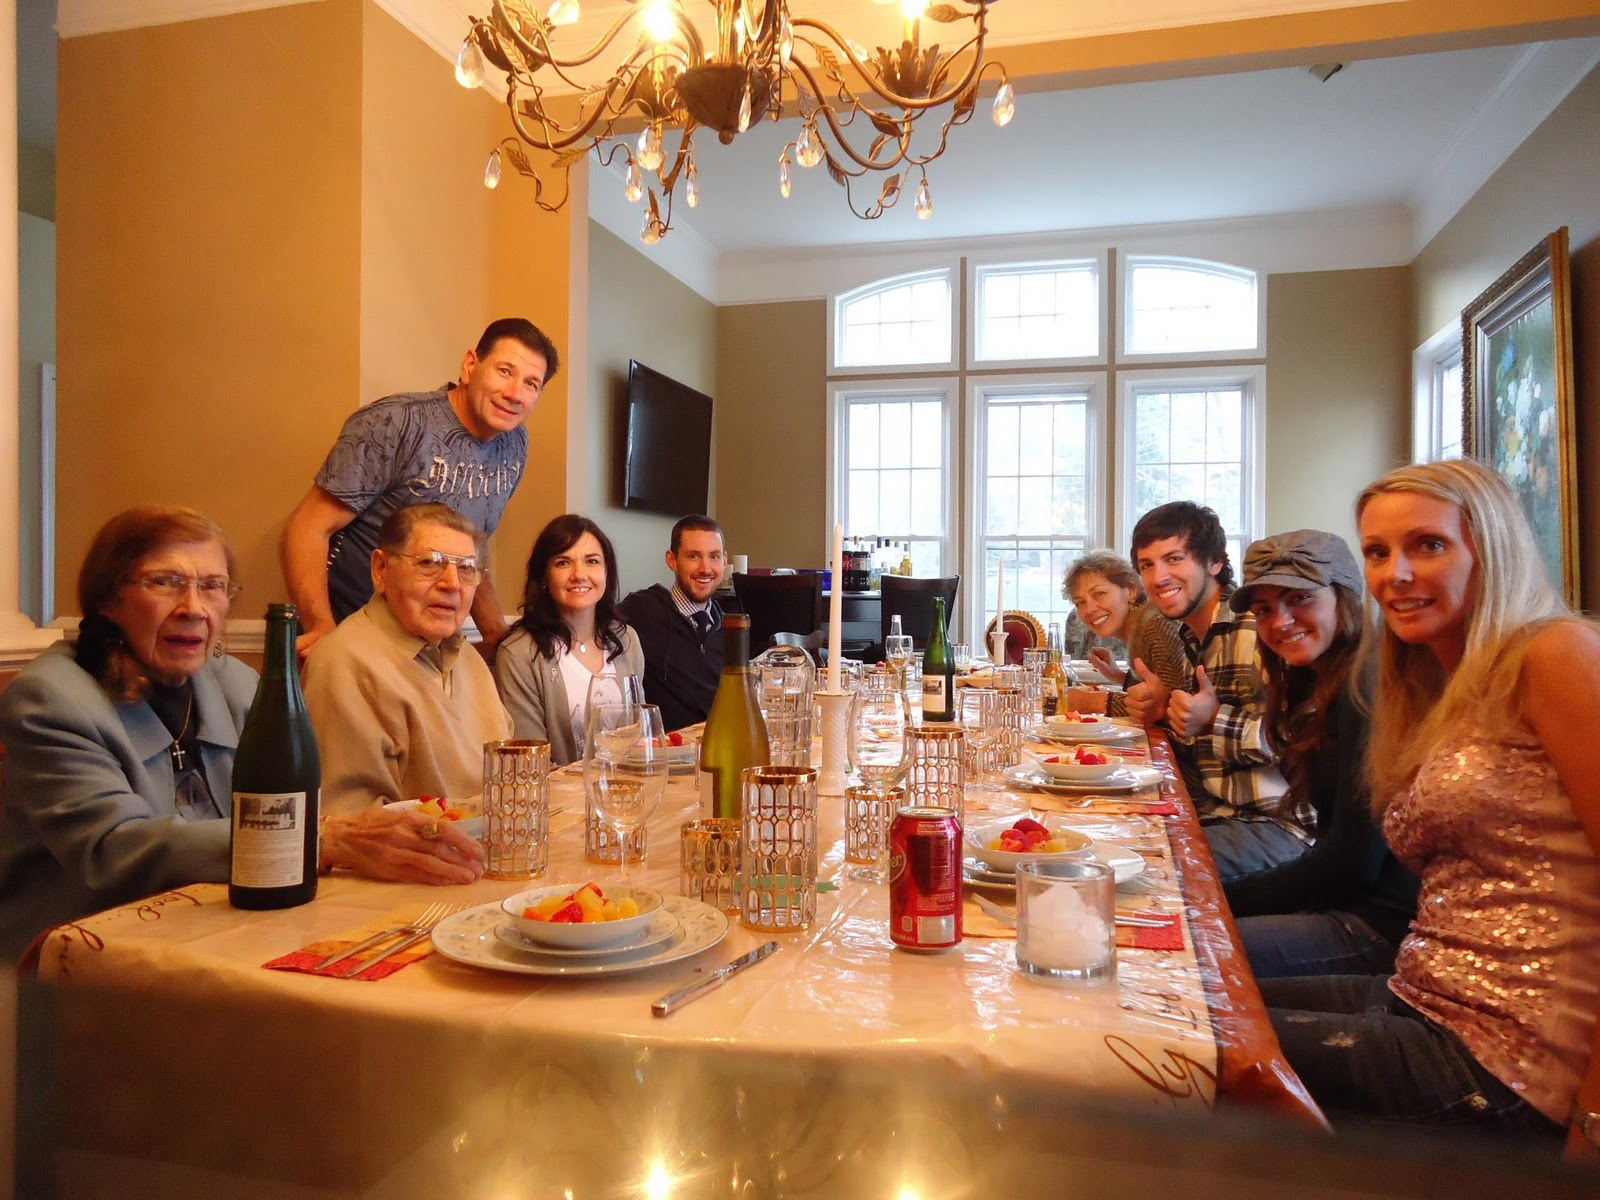 dinner table in family Eckrich contest brings families back to the dinner table downers grove,  ill, may 30 /prnewswire-firstcall/ -- families today are finding it more difficult.